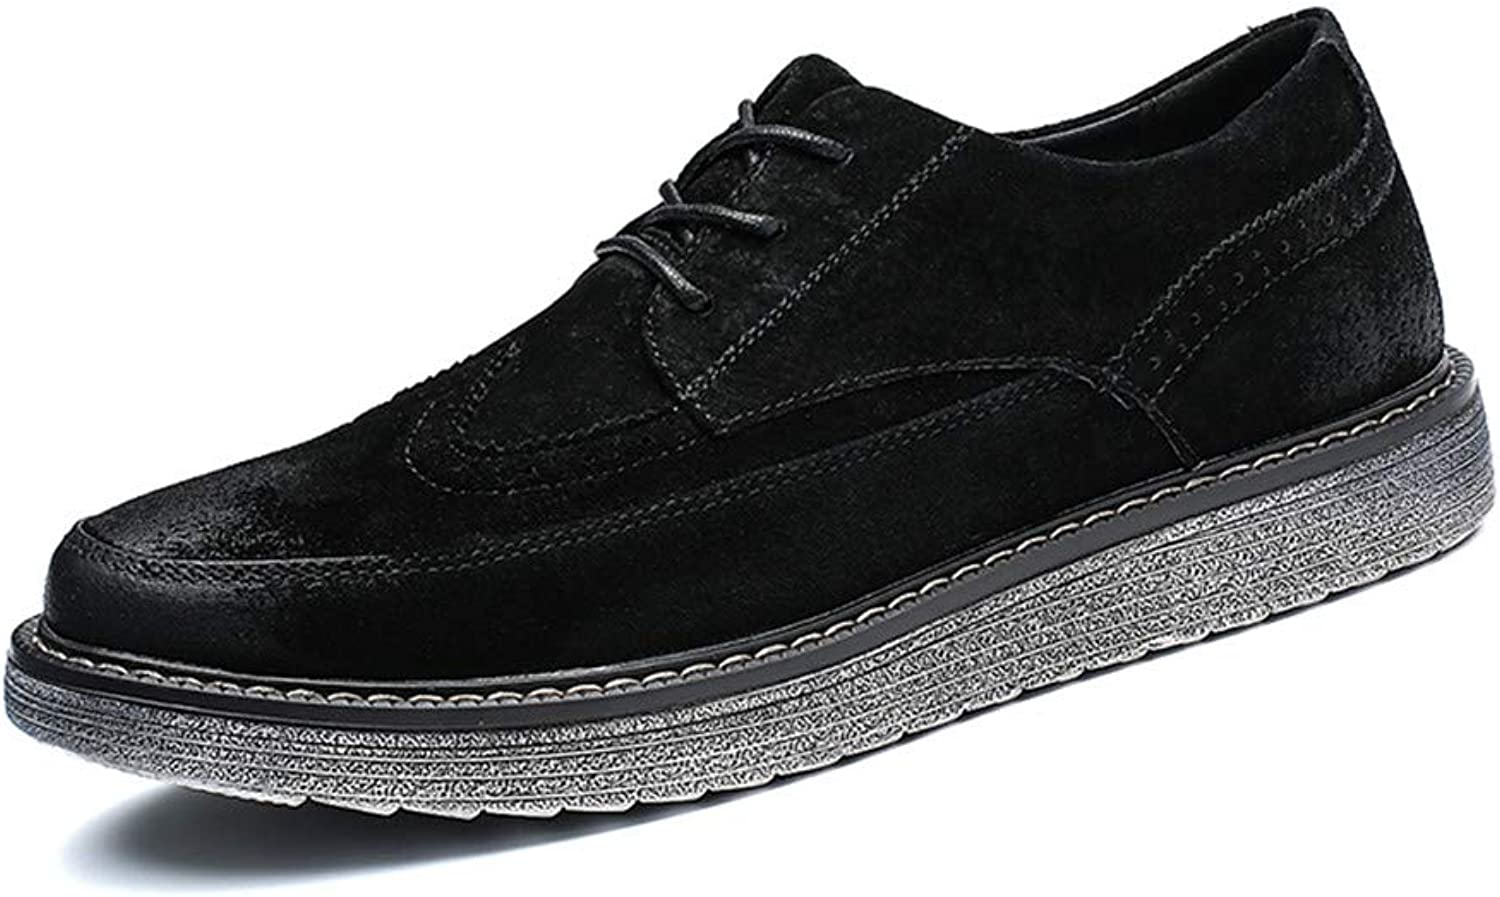 Xiaojuan-shoes, Men Oxford Business Casual British Outsole Enhanced Youth Retro Brogue shoes (color   Black, Size   8.5 UK)